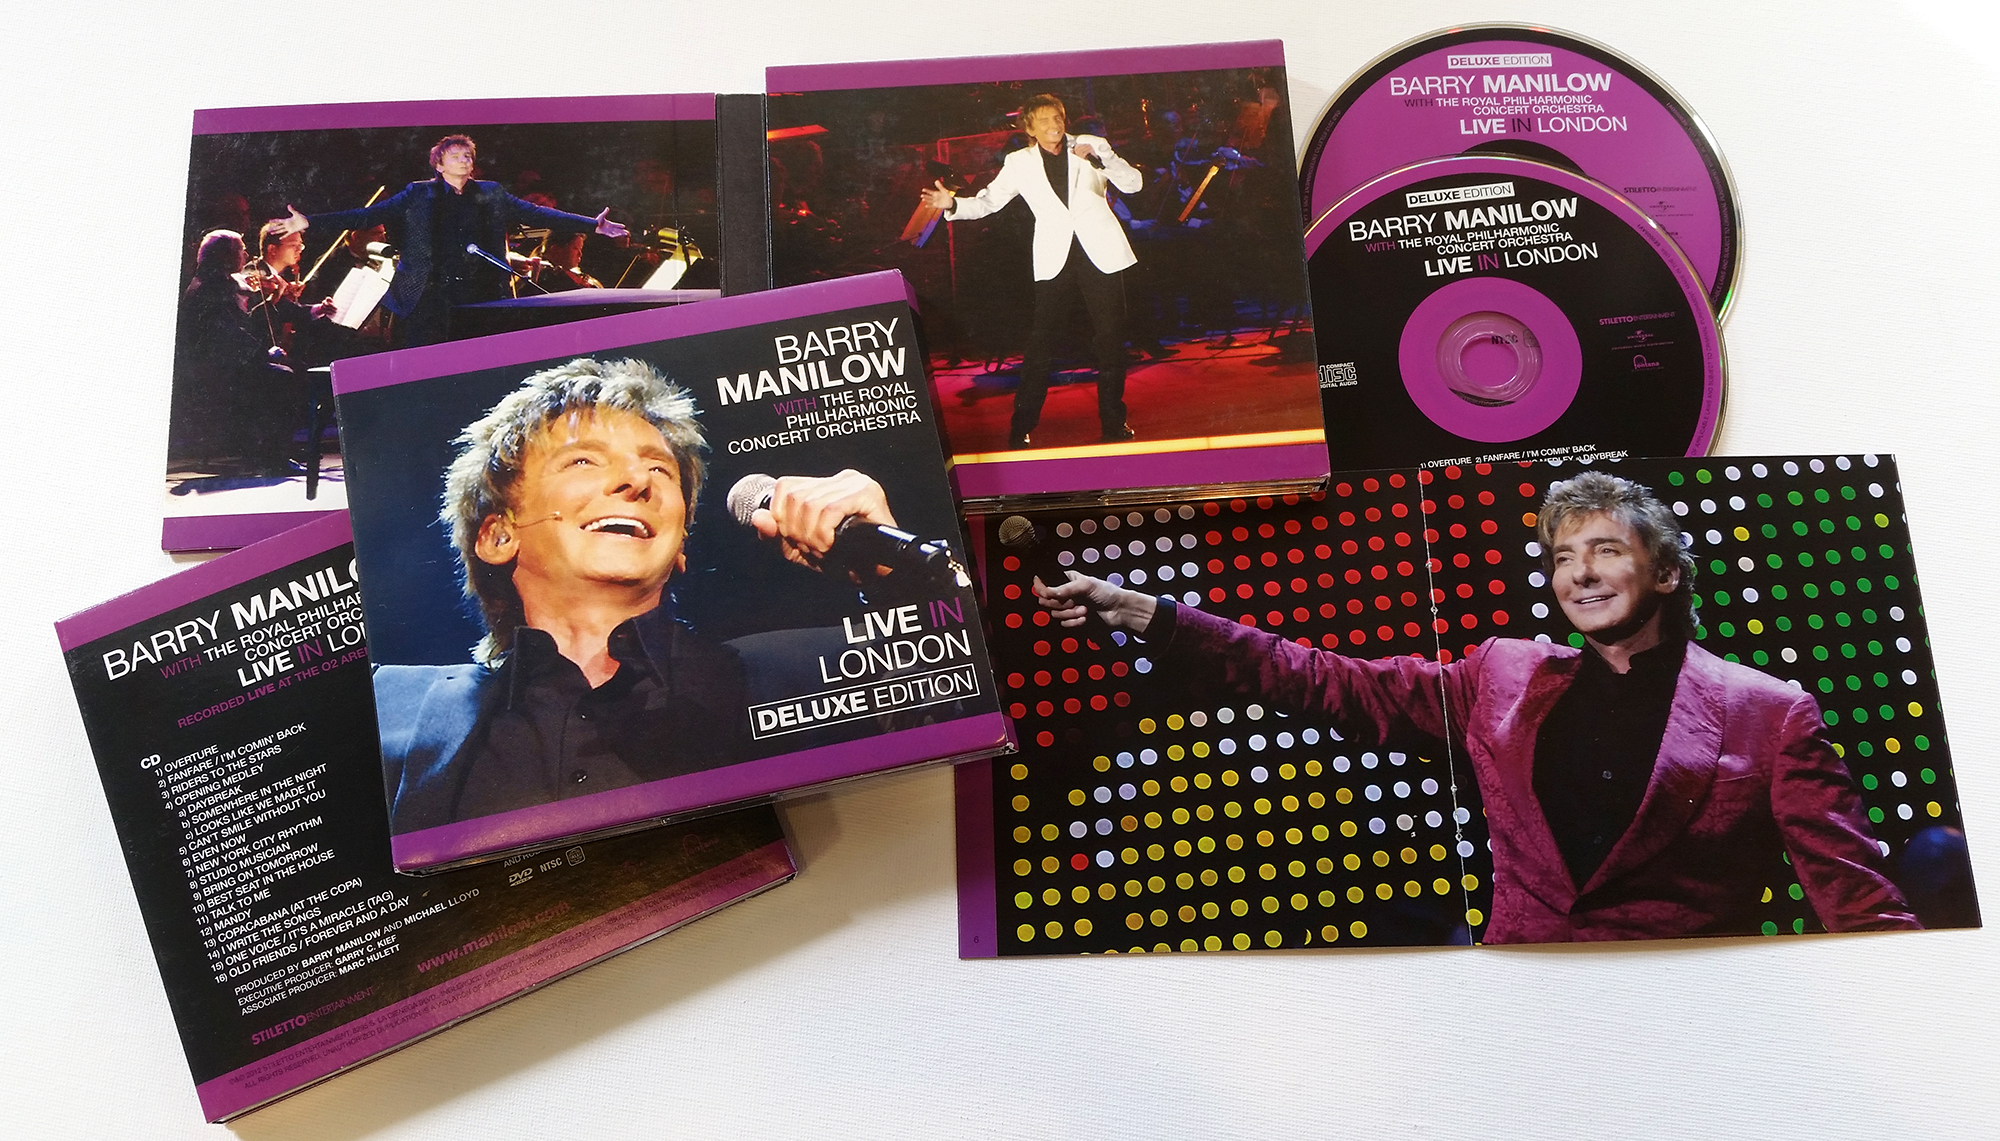 manilow-live-in-london-image